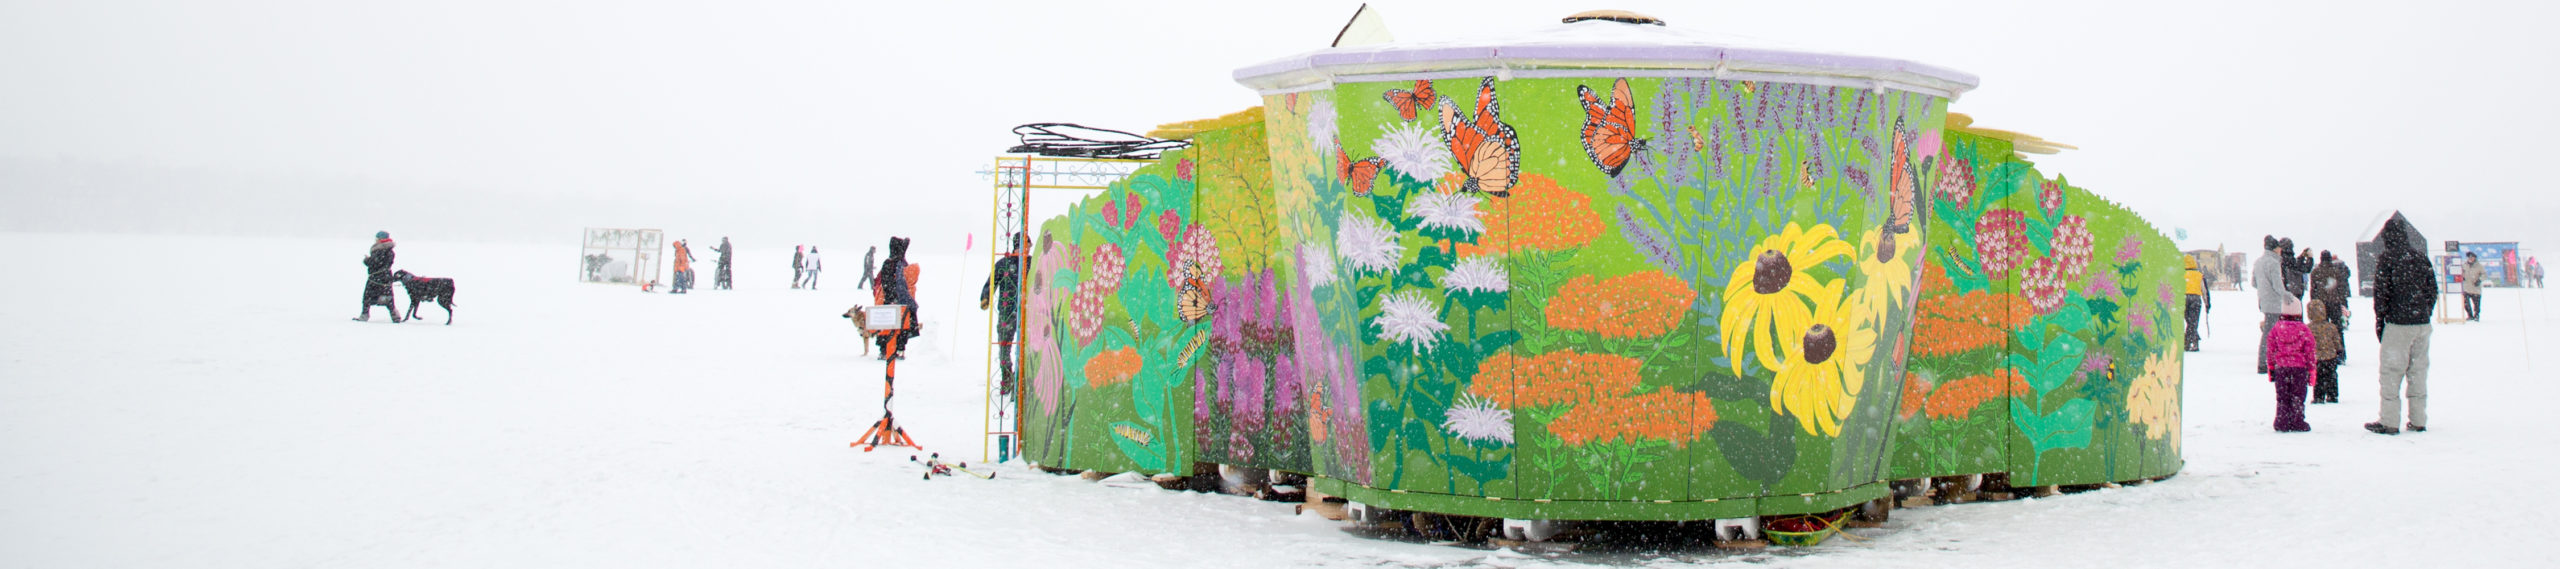 The Monarch Shanty is a bright green bowl with a white lid that disappears against the snowy sky. Painted on the structure are huge spring pollinator flowers, as big as the forms of people standing outside.